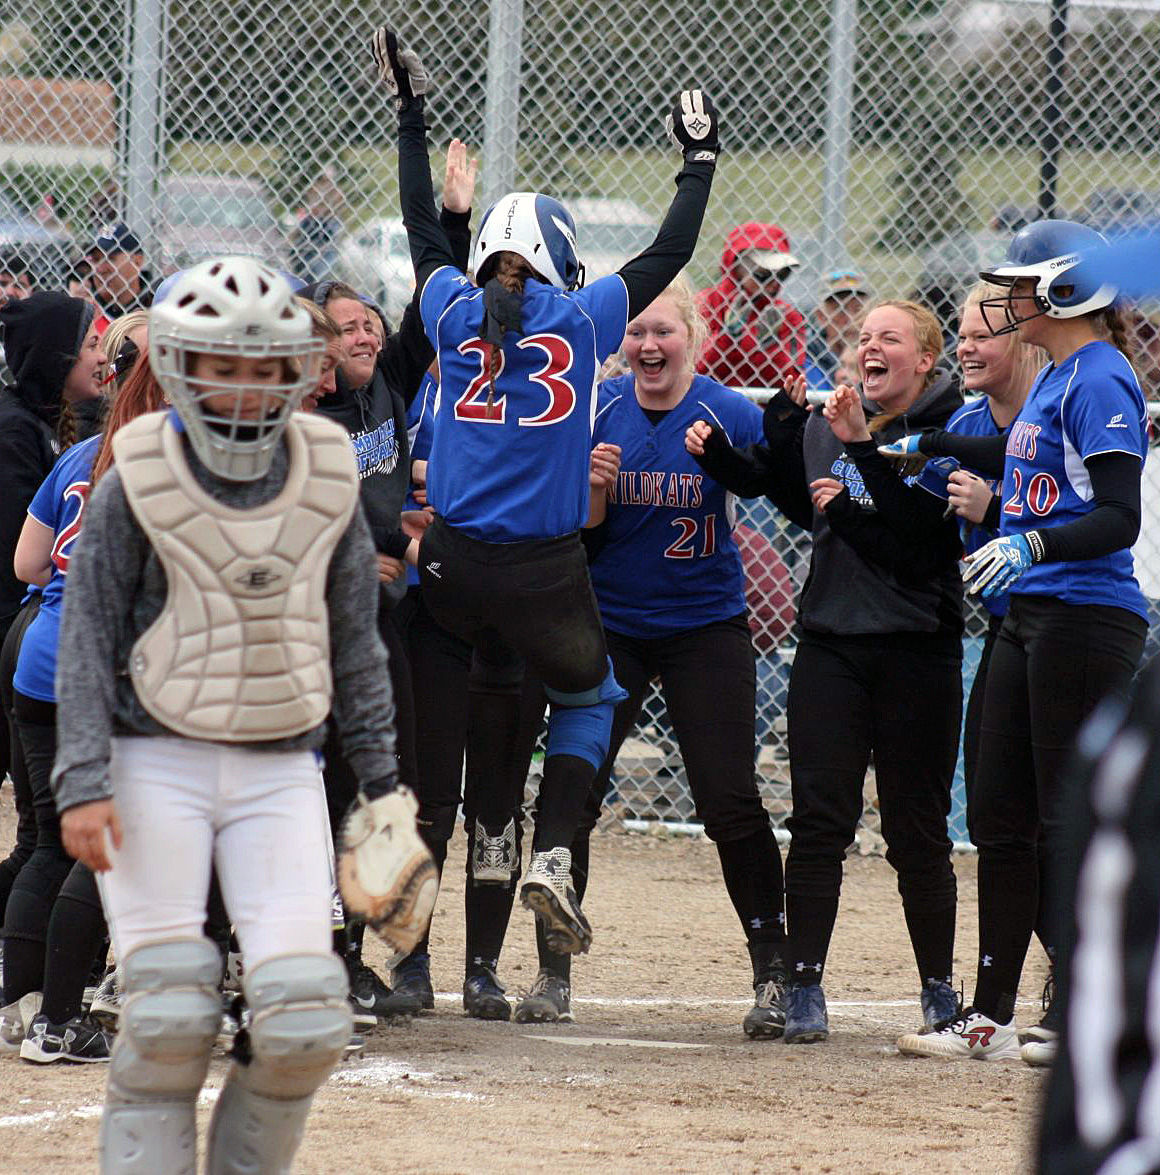 Teammates welcome Peyton Kehr (23) at home plate